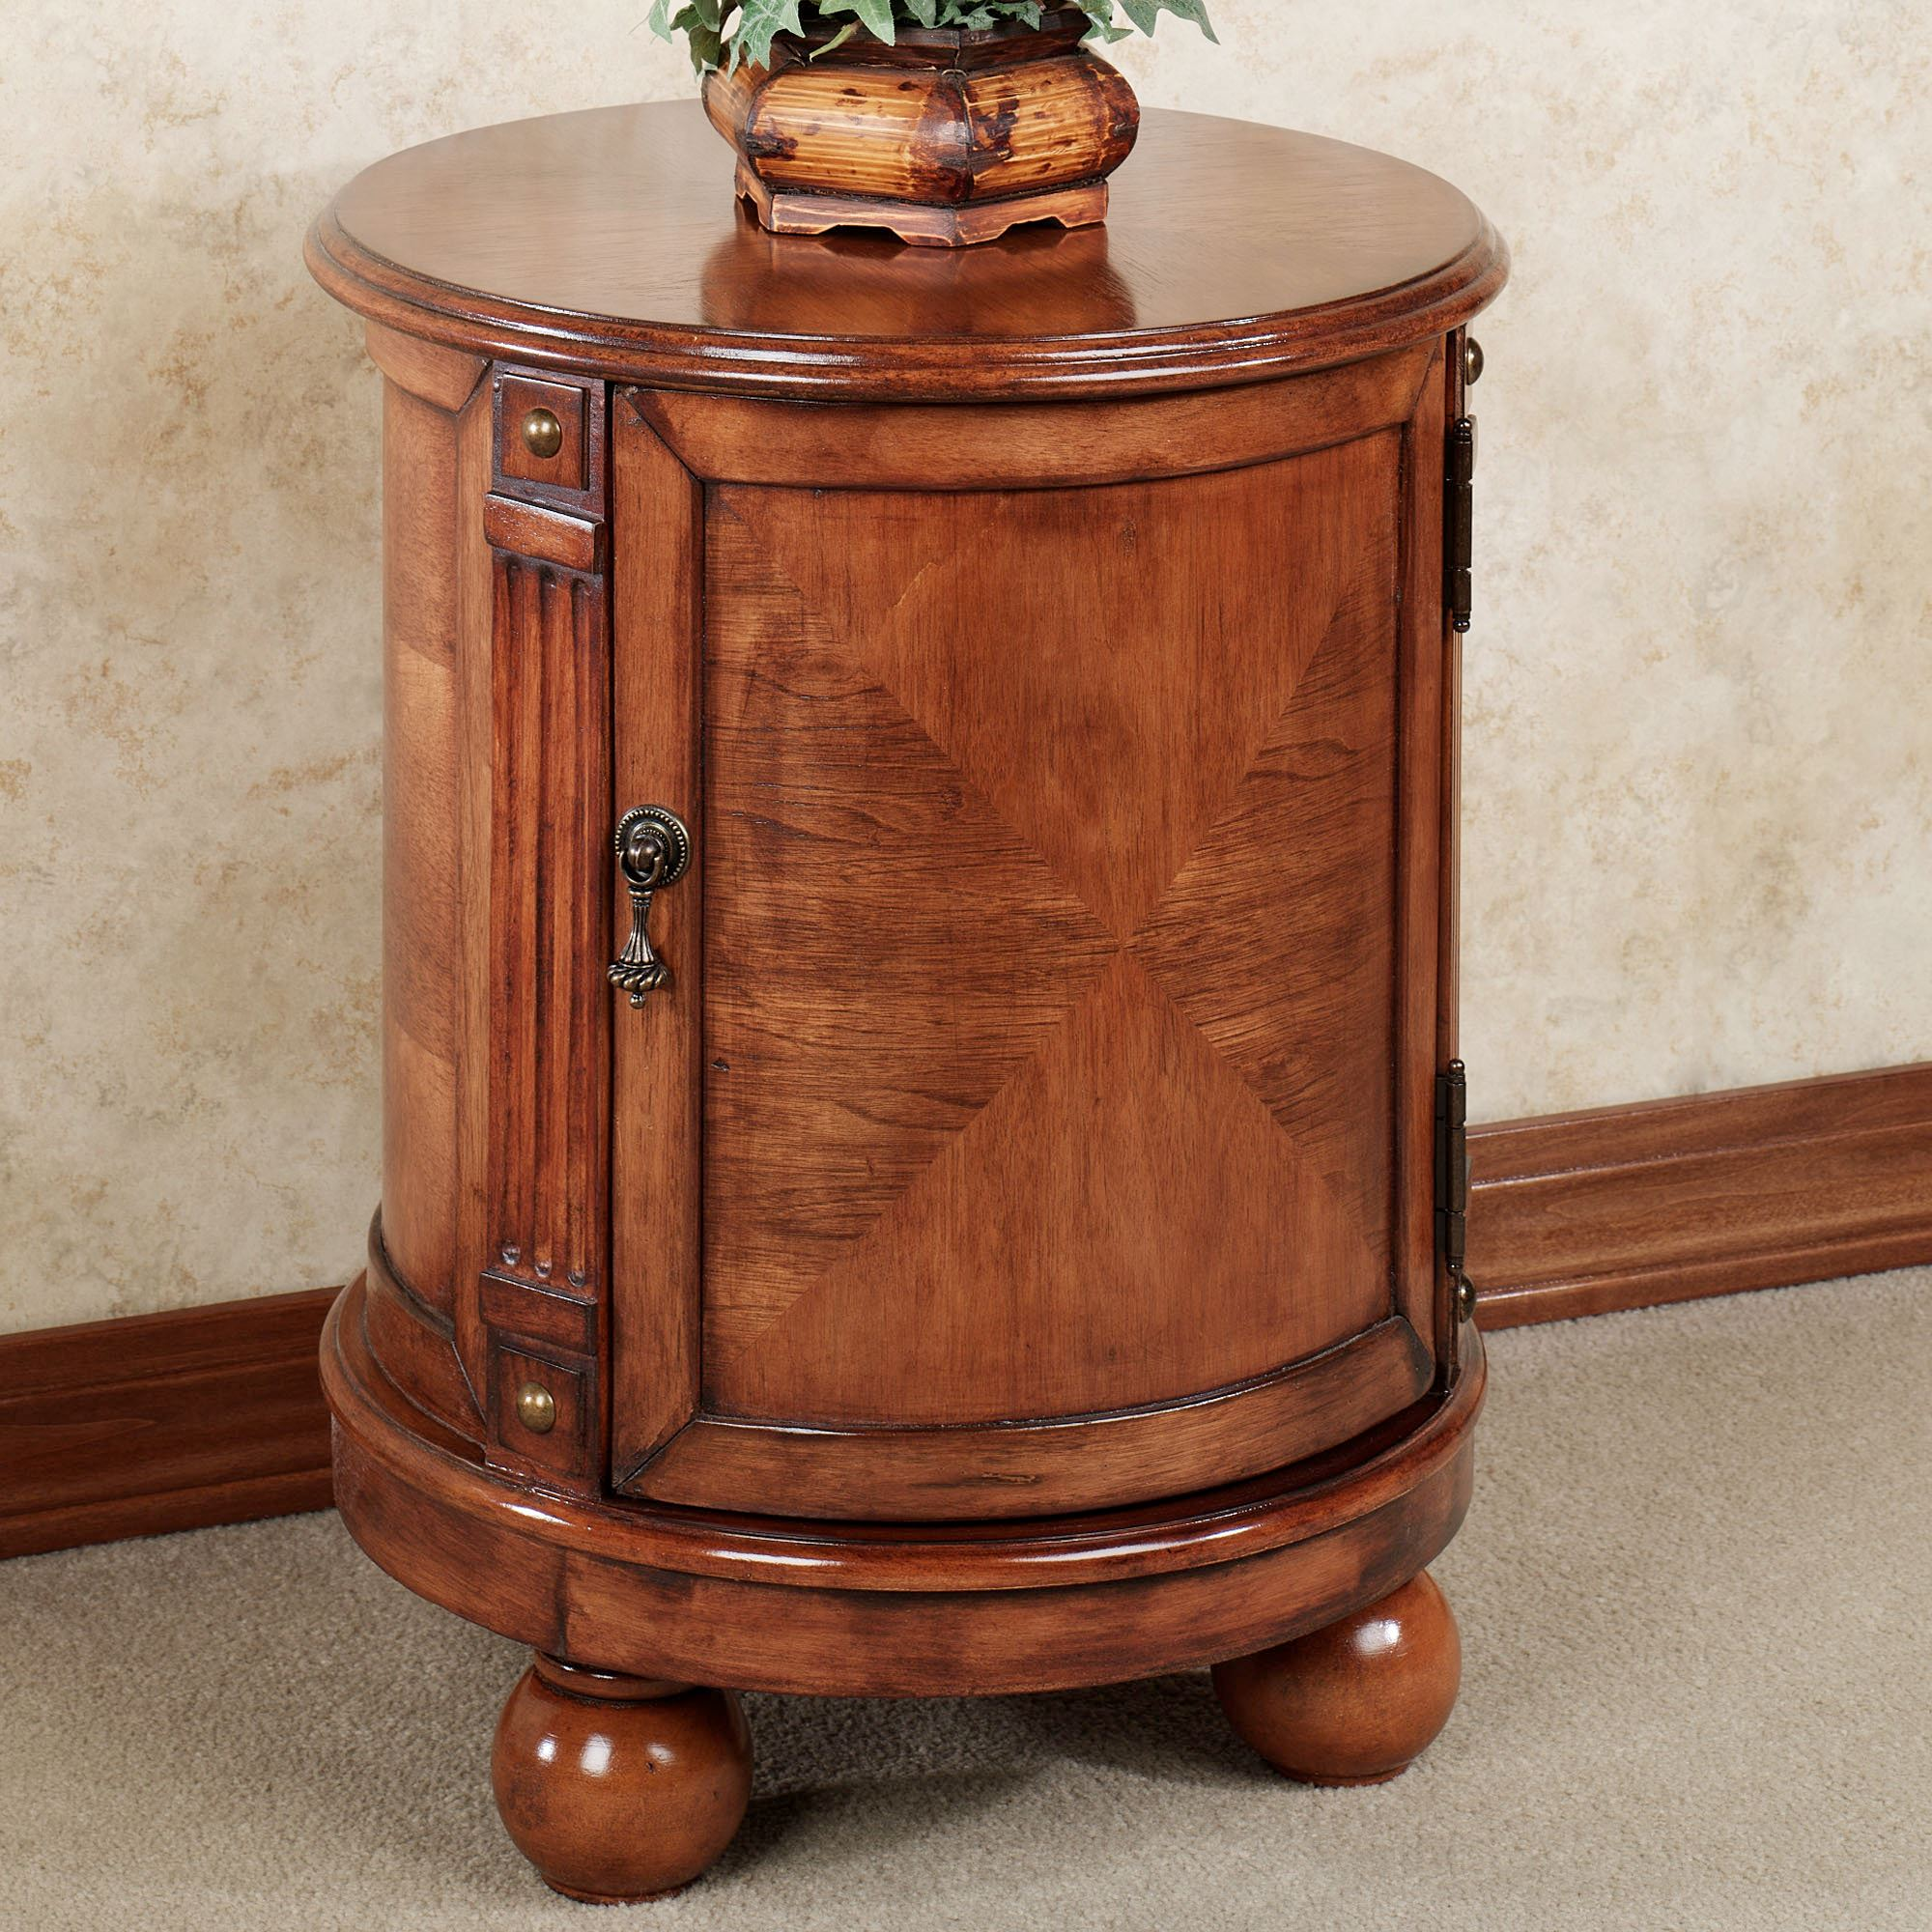 eldred round chairside accent storage chest table natural cherry touch zoom patio antique pedestal drum throne for guitar mcm furniture target threshold side cushions black